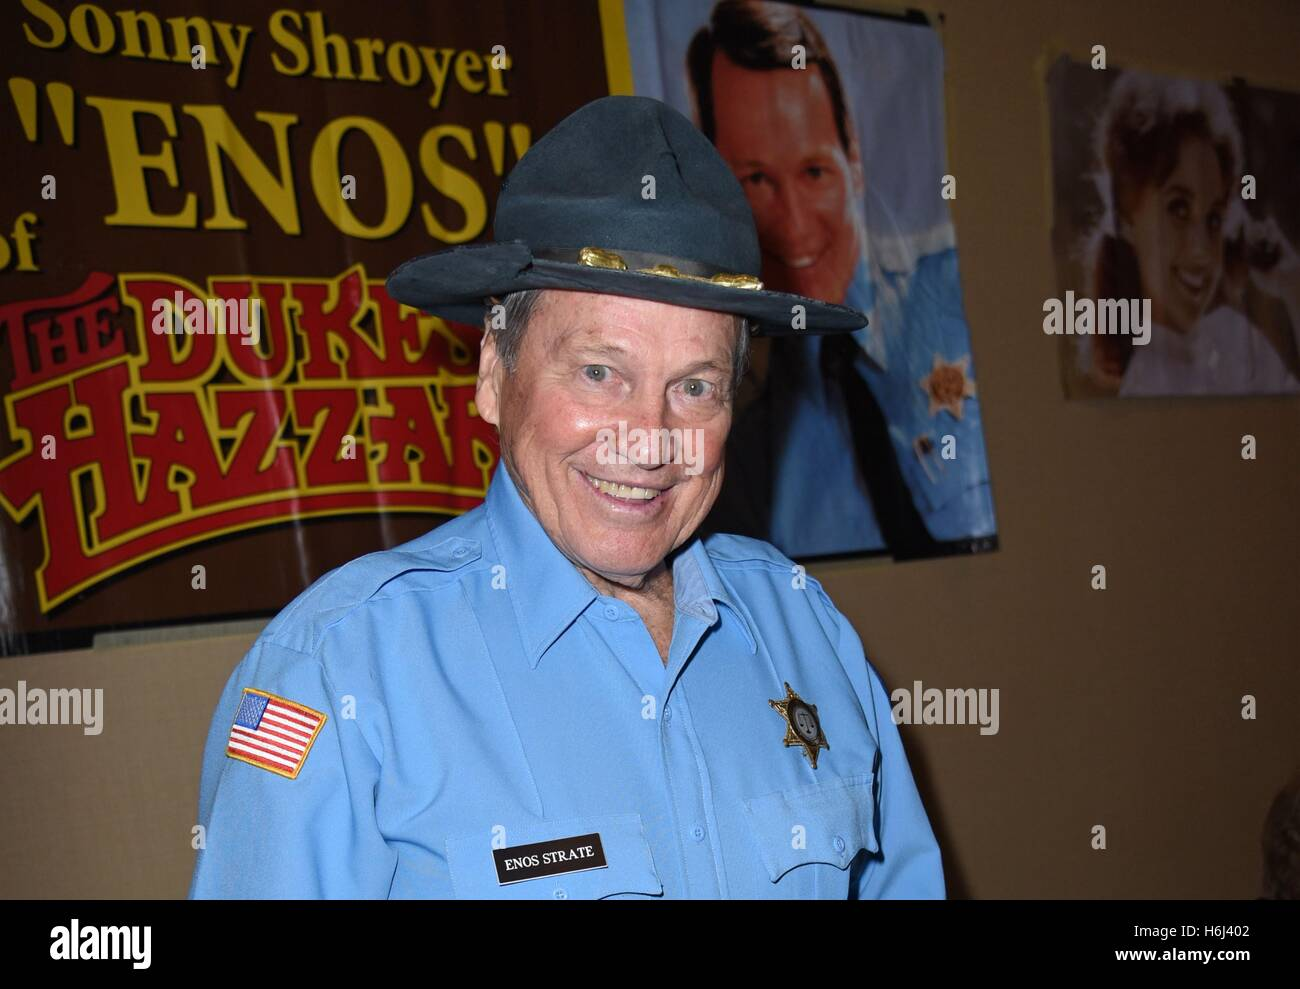 Sonny Shroyer High Resolution Stock Photography And Images Alamy Find the latest tracks, albums, and images from sonny shroyer. https www alamy com stock photo parsippany nj usa 28th oct 2016 sonny shroyer in attendance for chiller 124558786 html